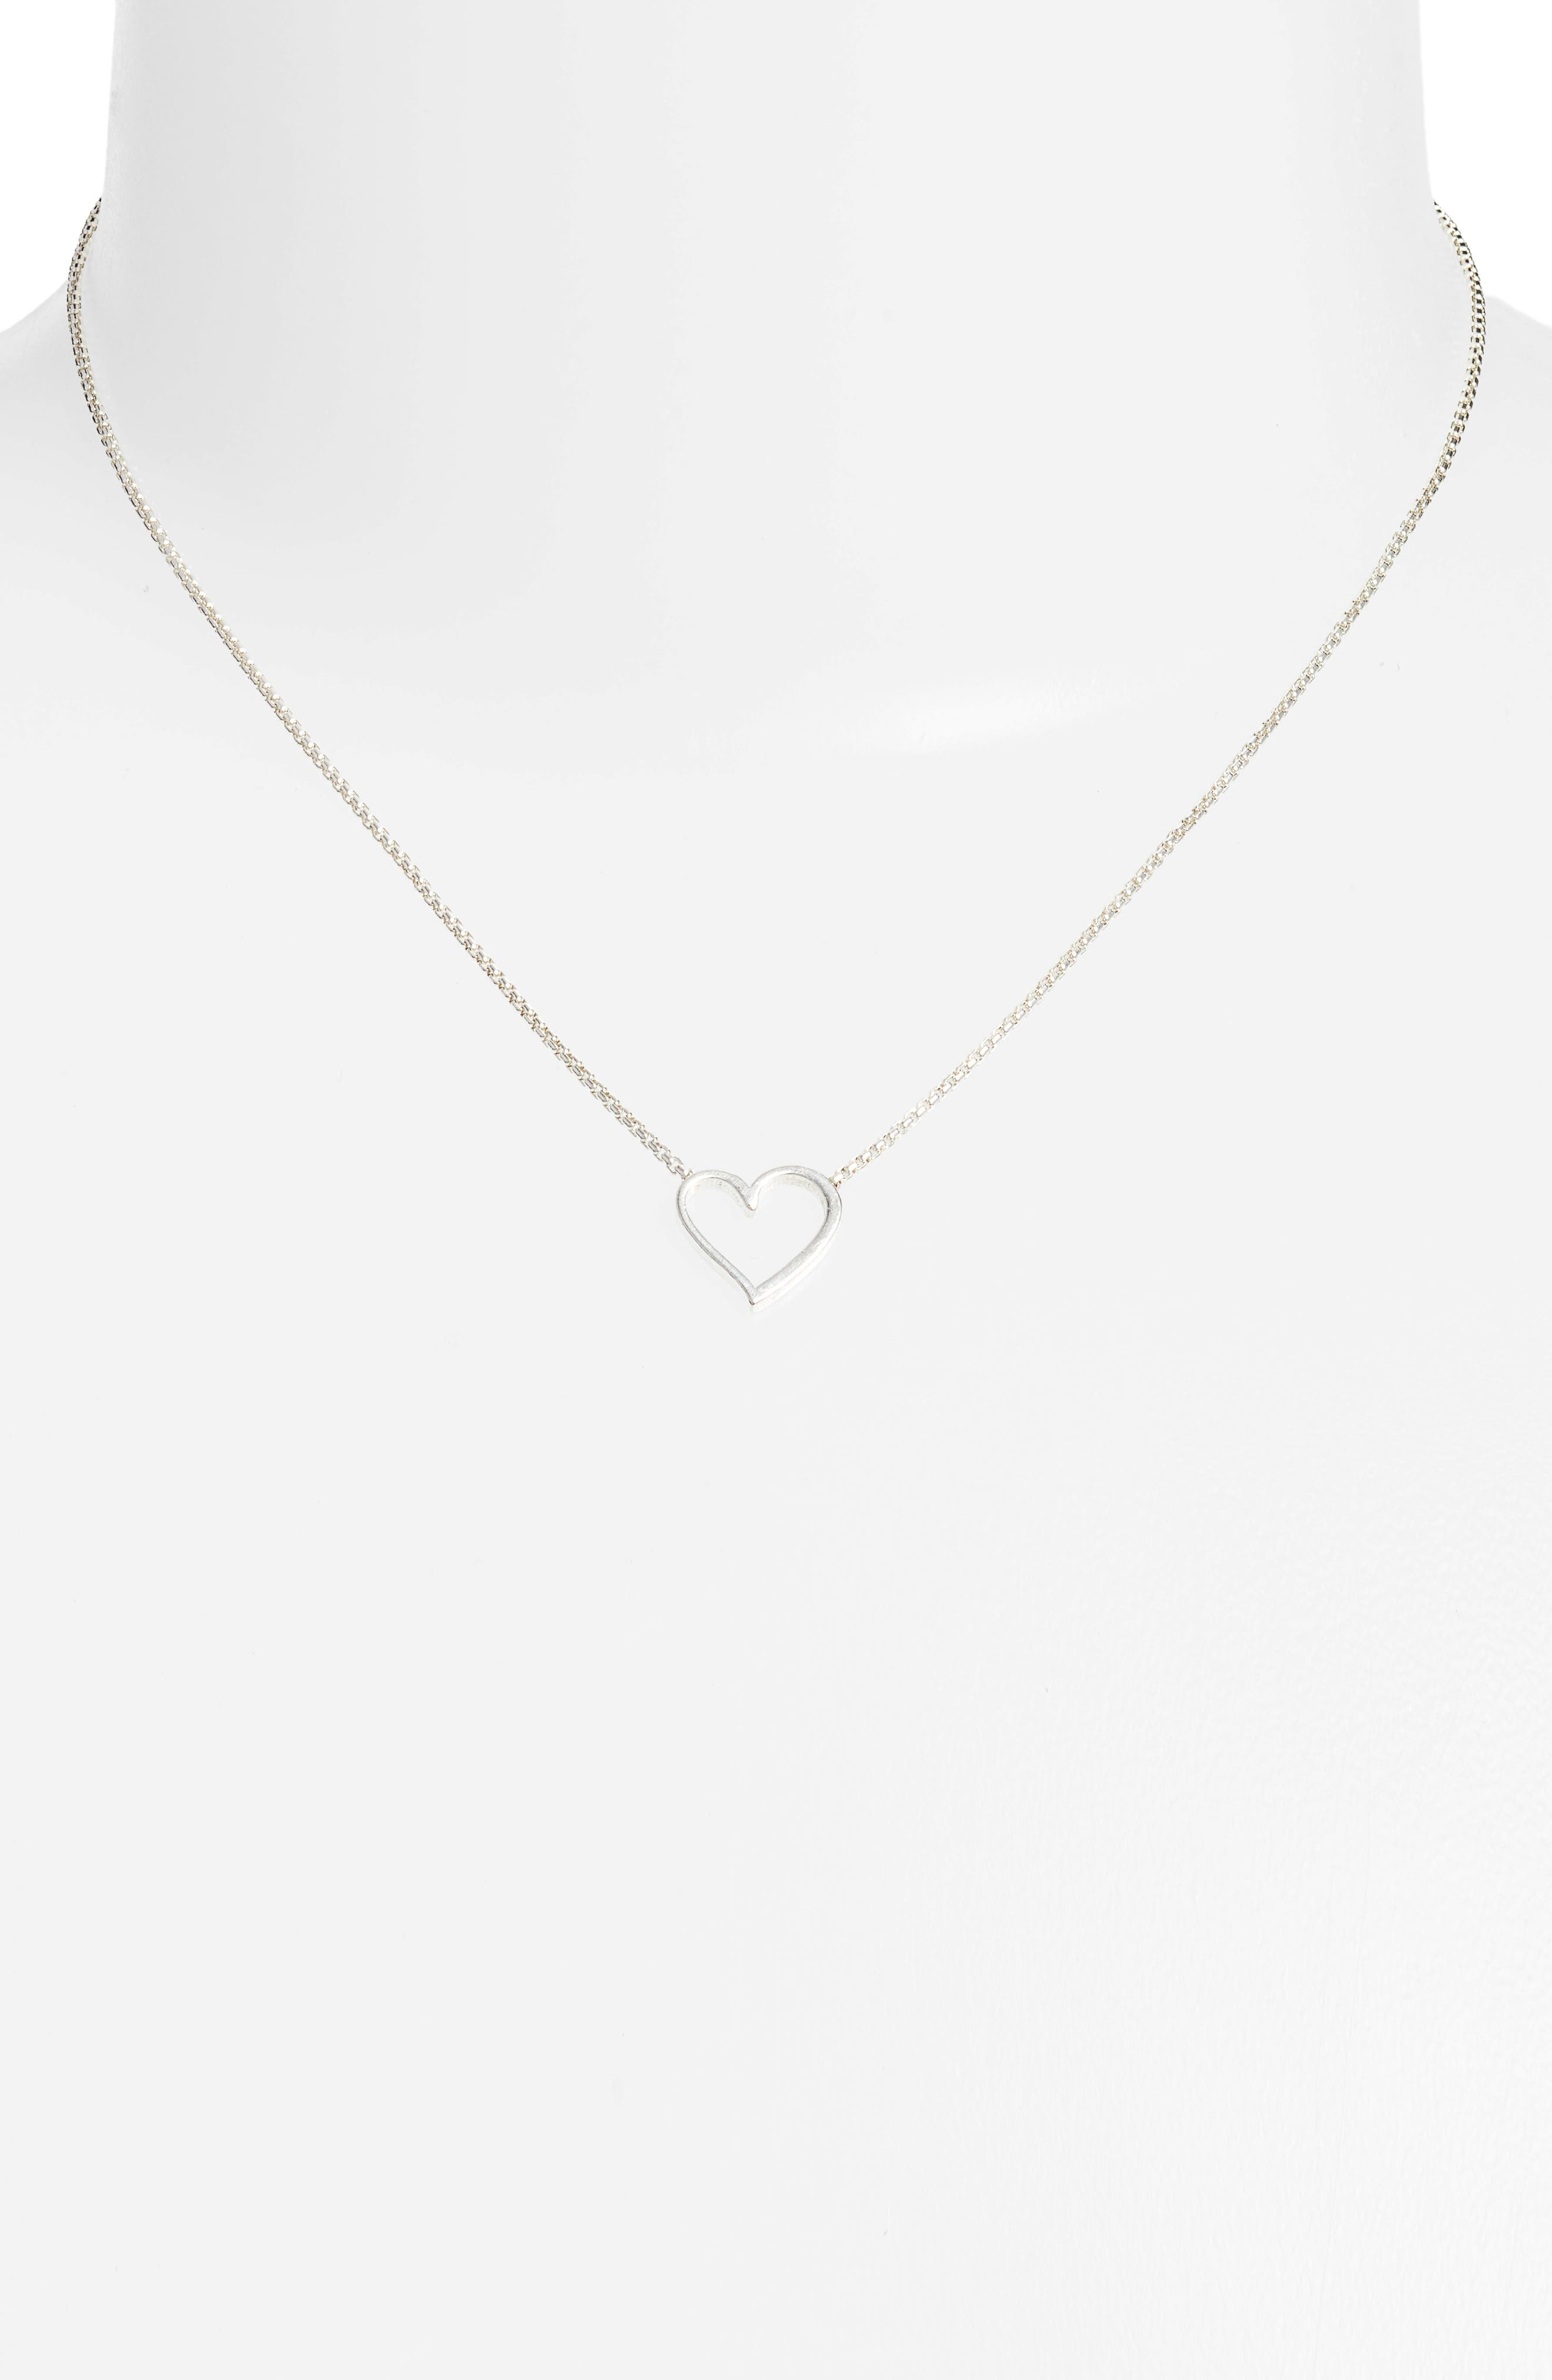 Heart Necklace,                             Alternate thumbnail 2, color,                             SILVER